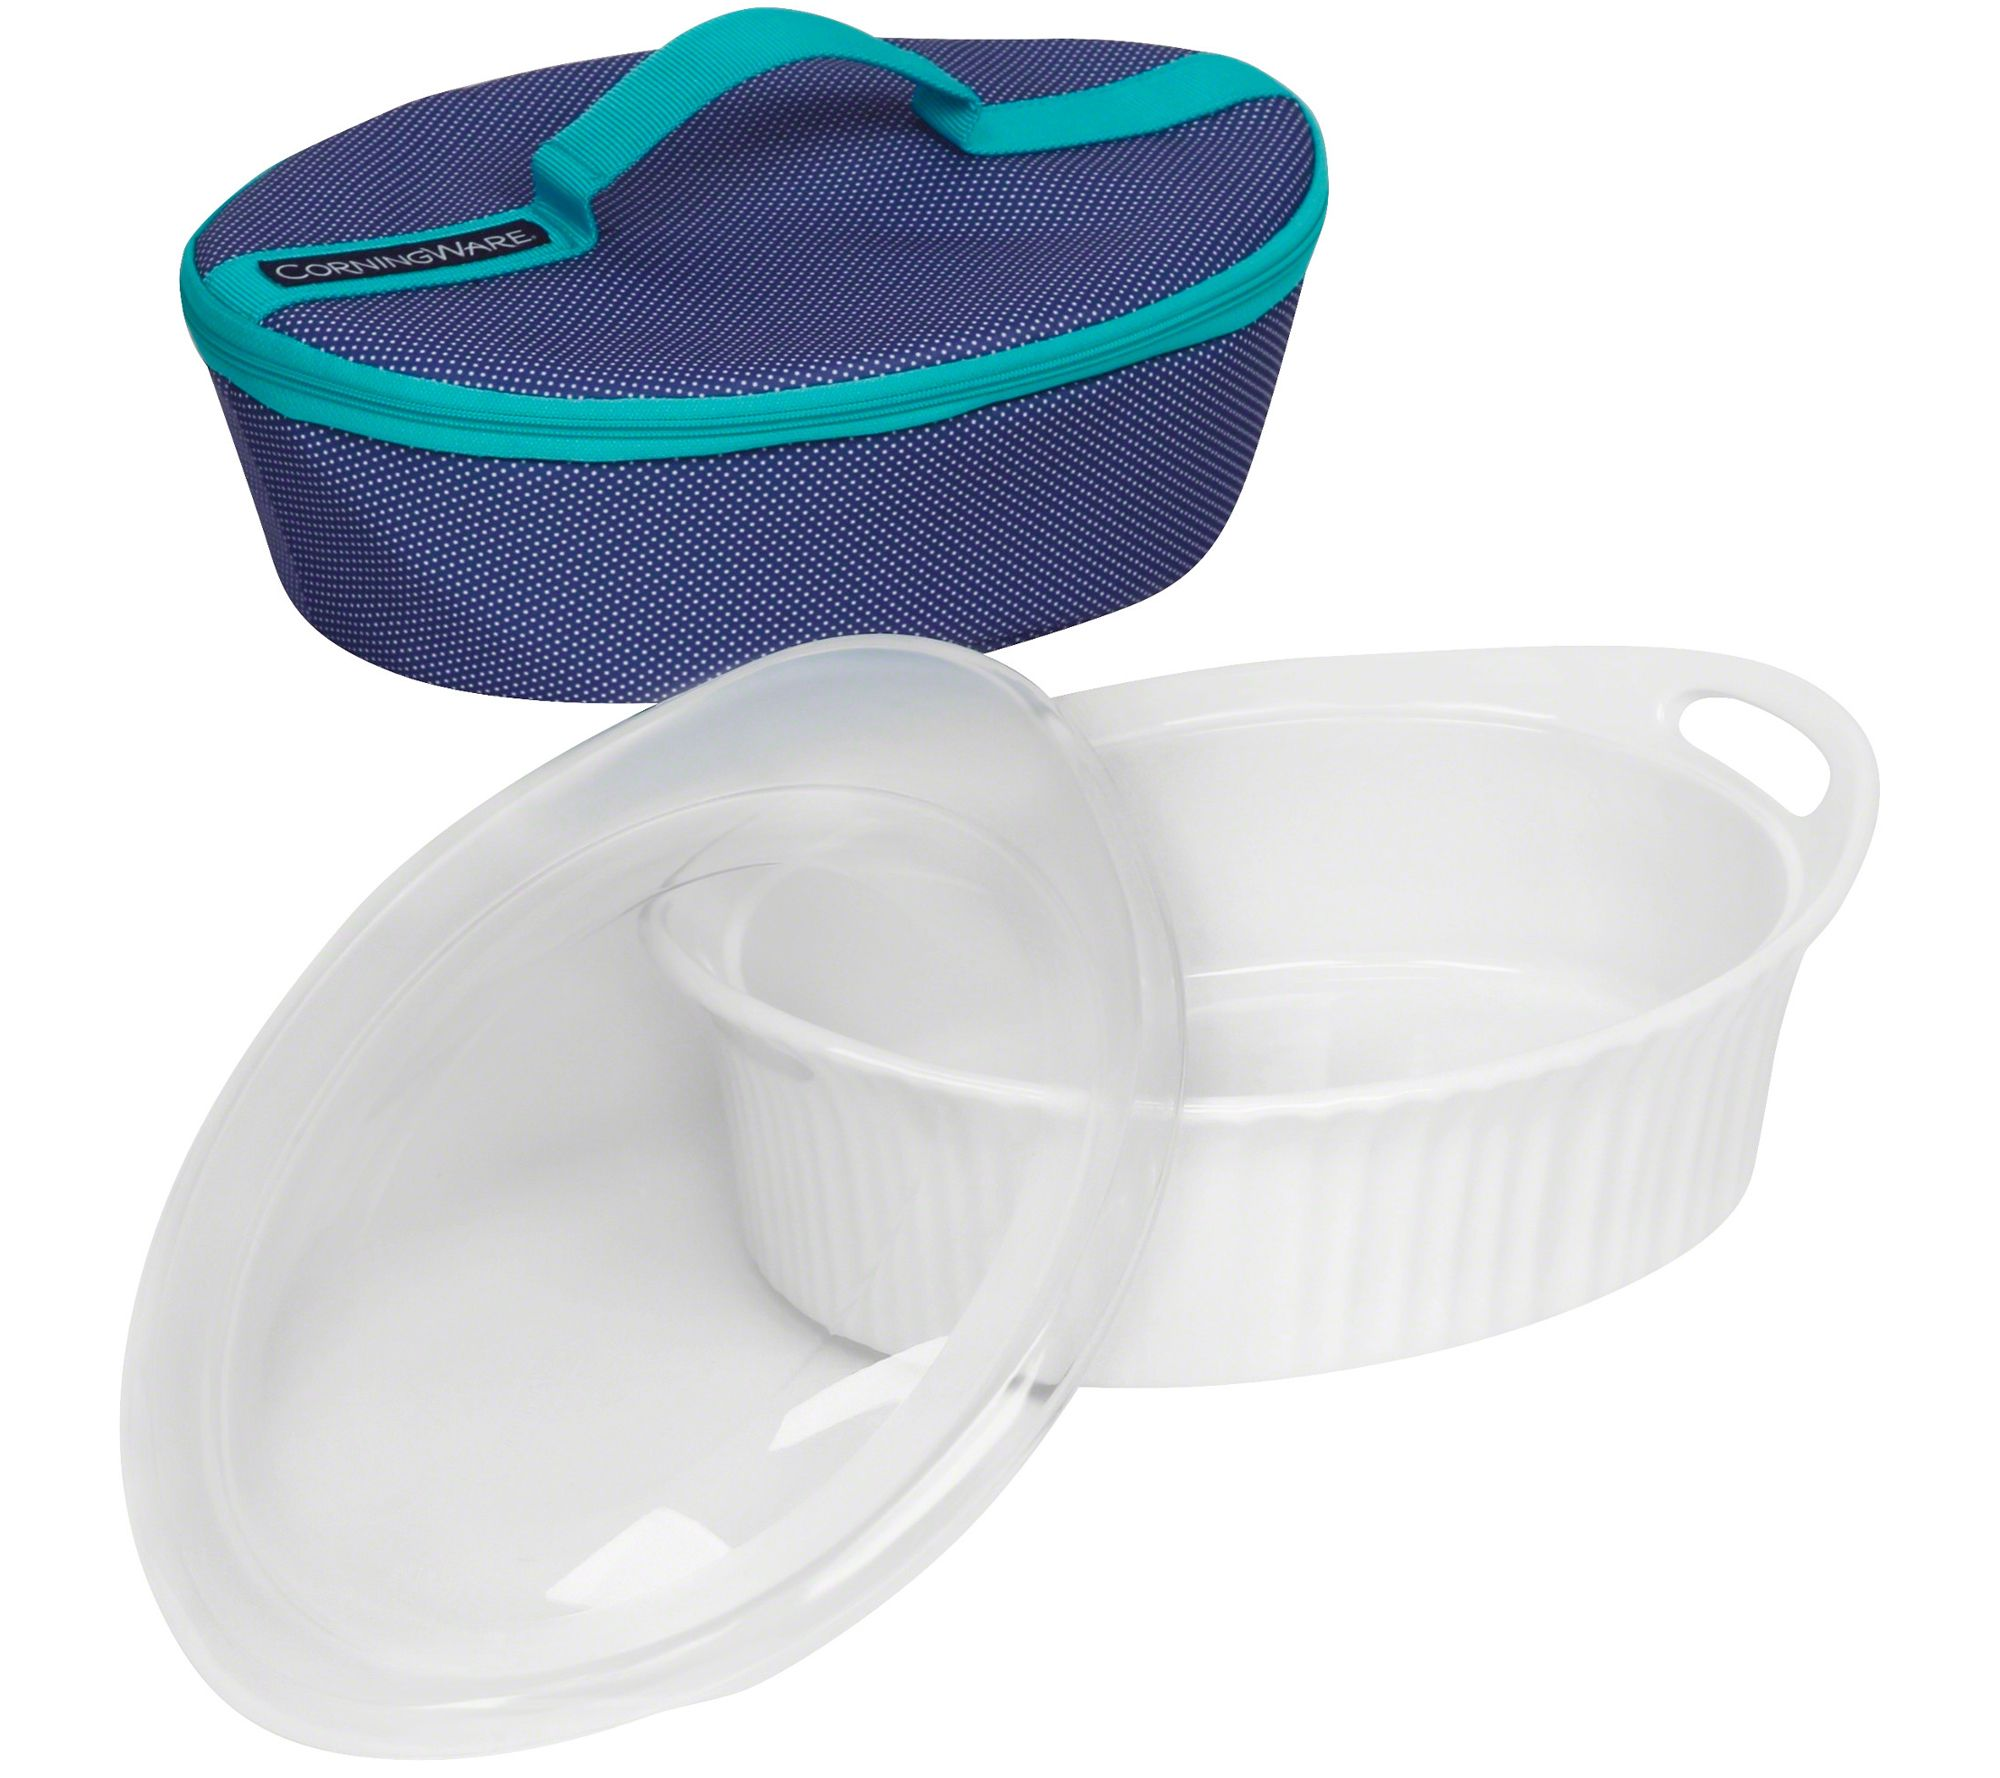 CorningWare French White 25qt Oval Bakeware with Travel Bag Page